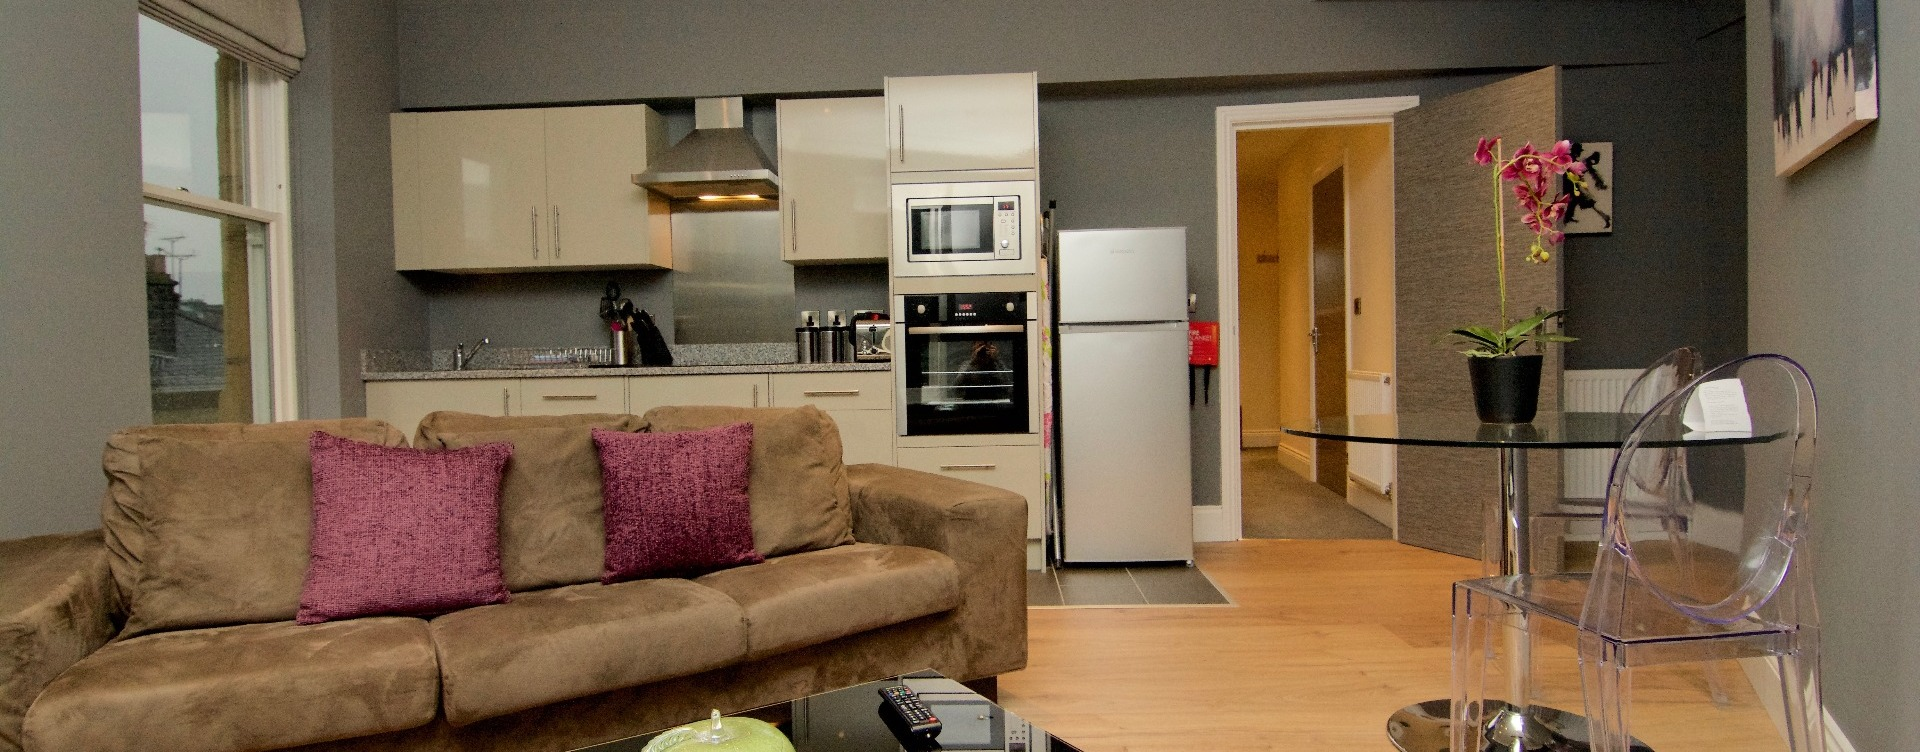 Harrogate Serviced Apartments